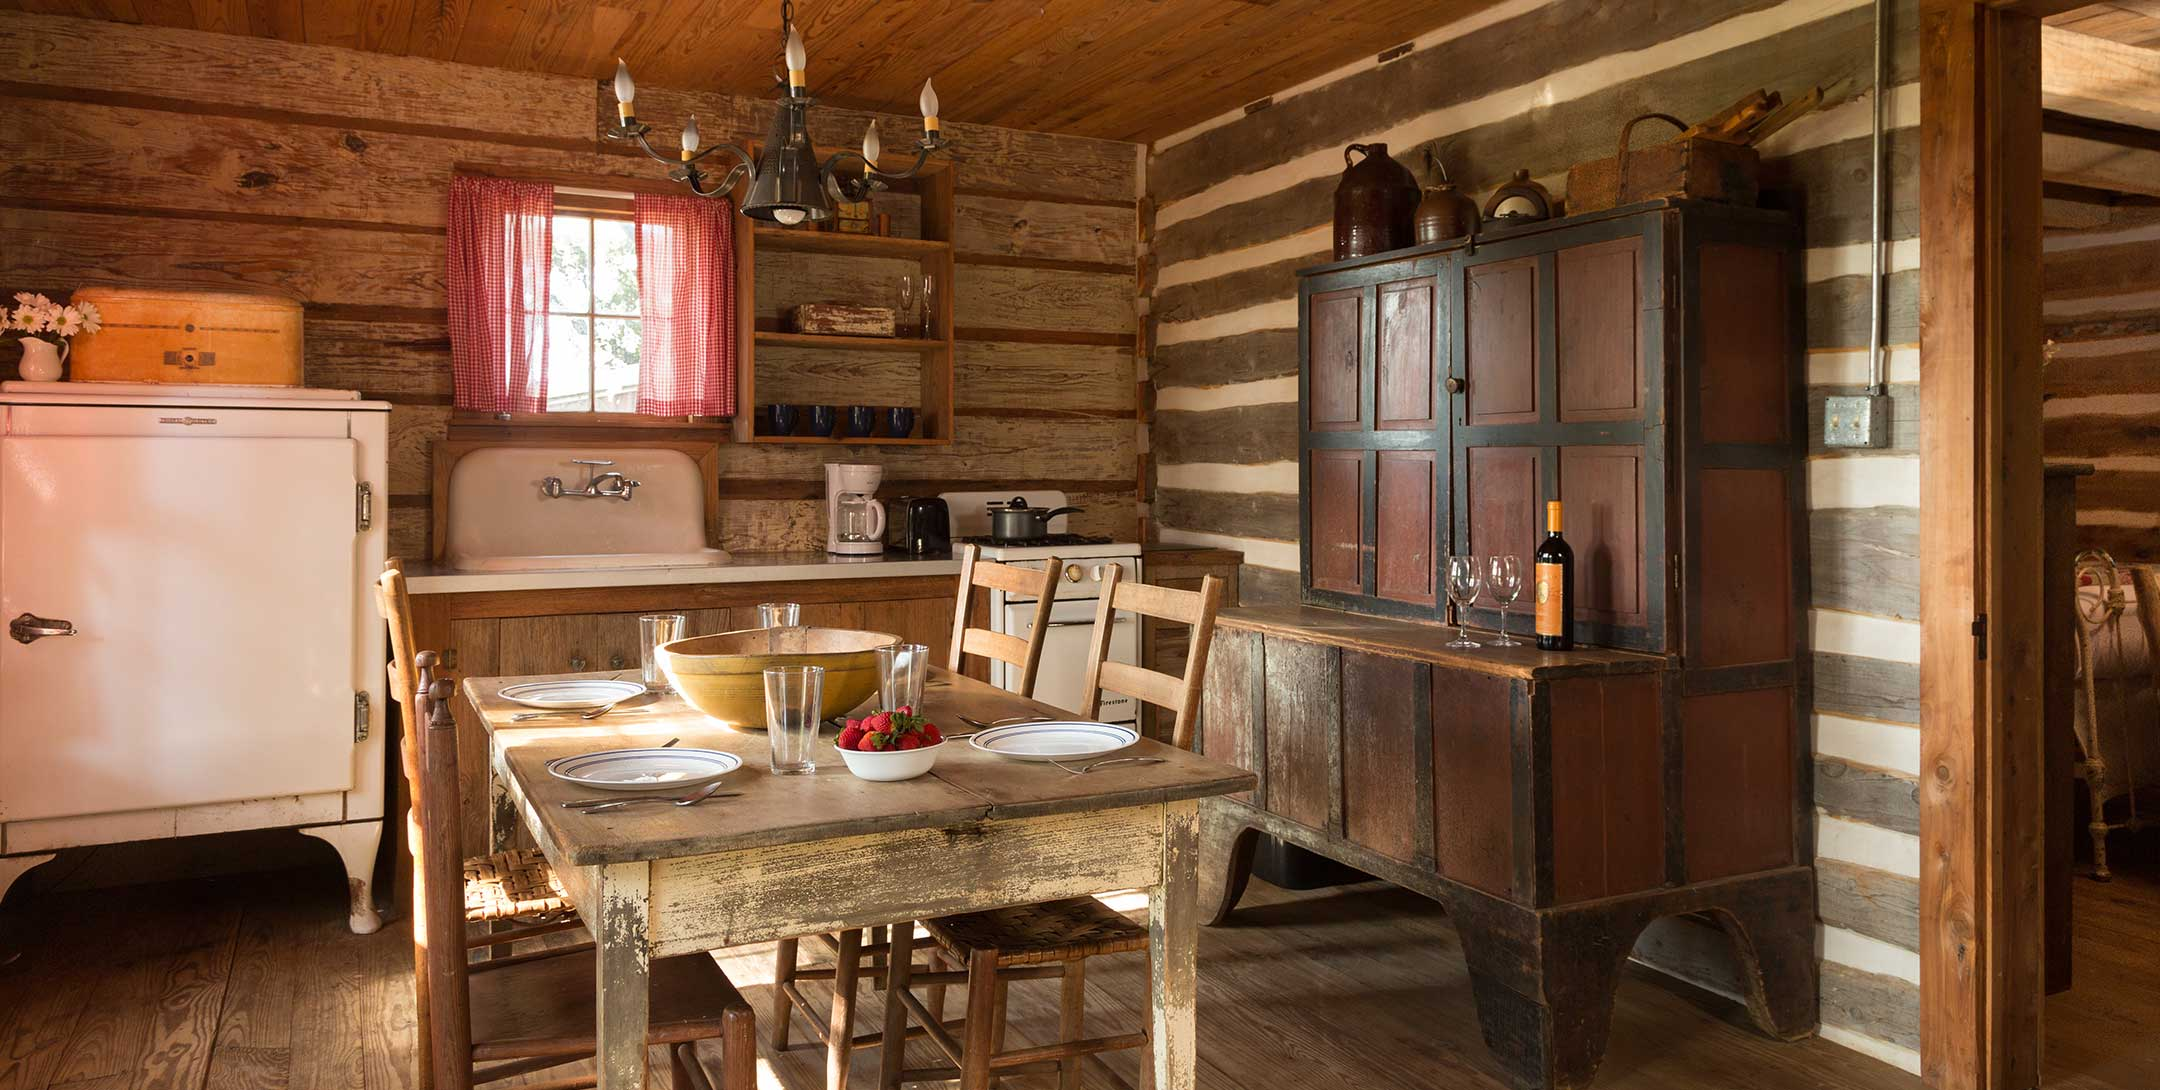 The Log Cabin kitchen